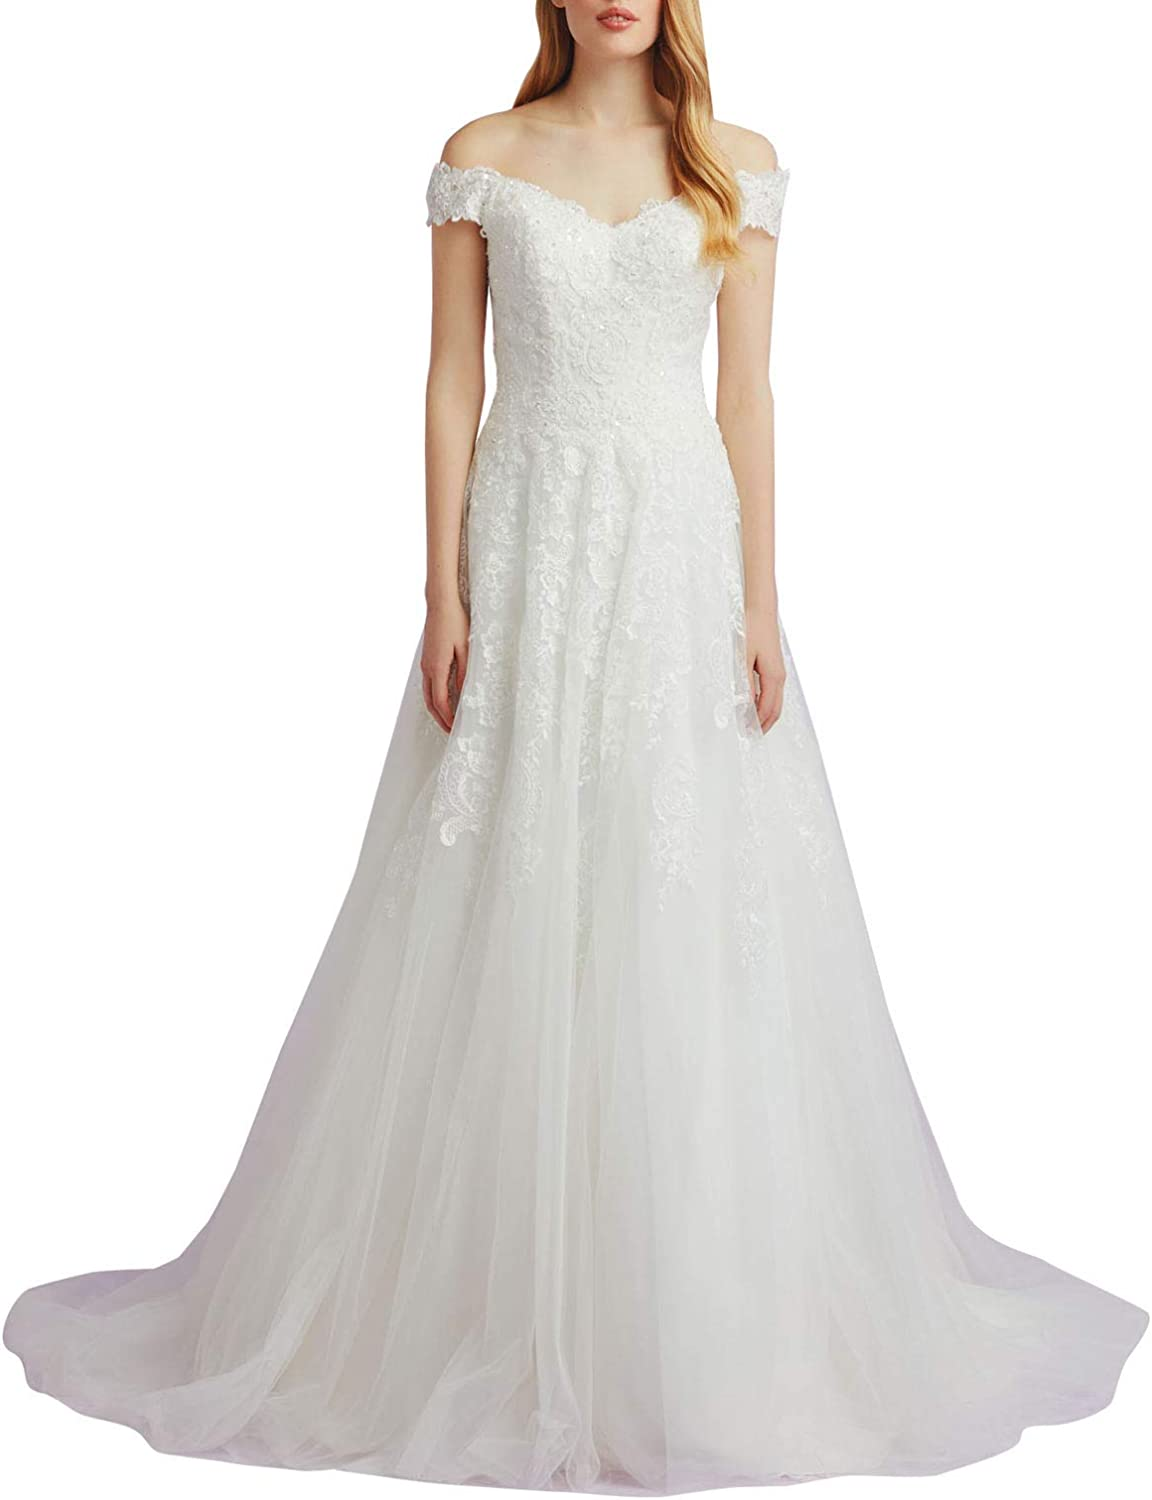 Aishanglina Women's Sweetheart Scalloped VNeck Lace Wedding Dresses Bridal Gowns